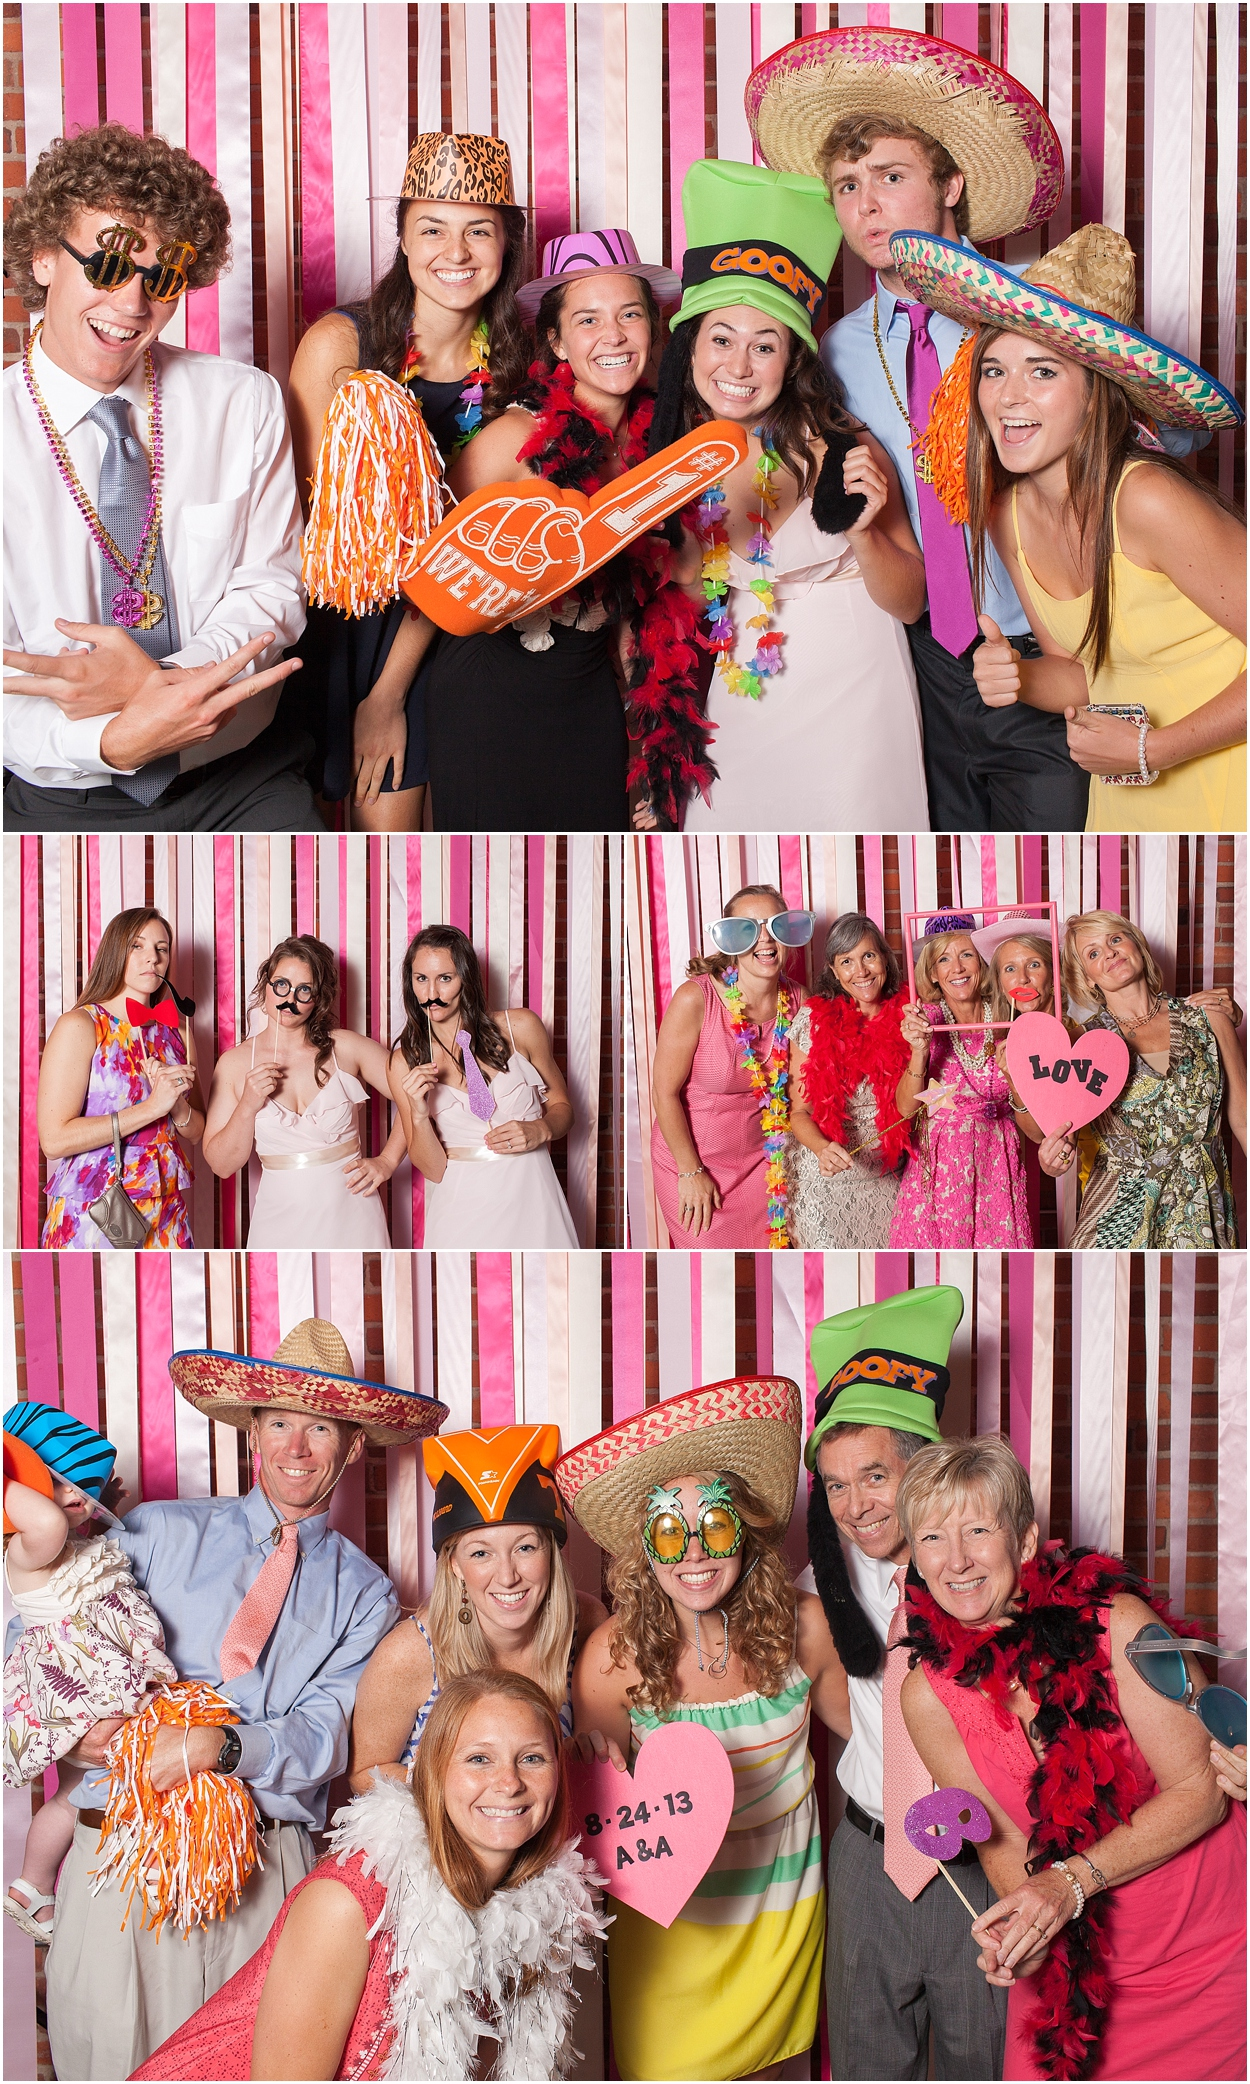 Photo Booth Al Knoxville Silly Shots Co Home